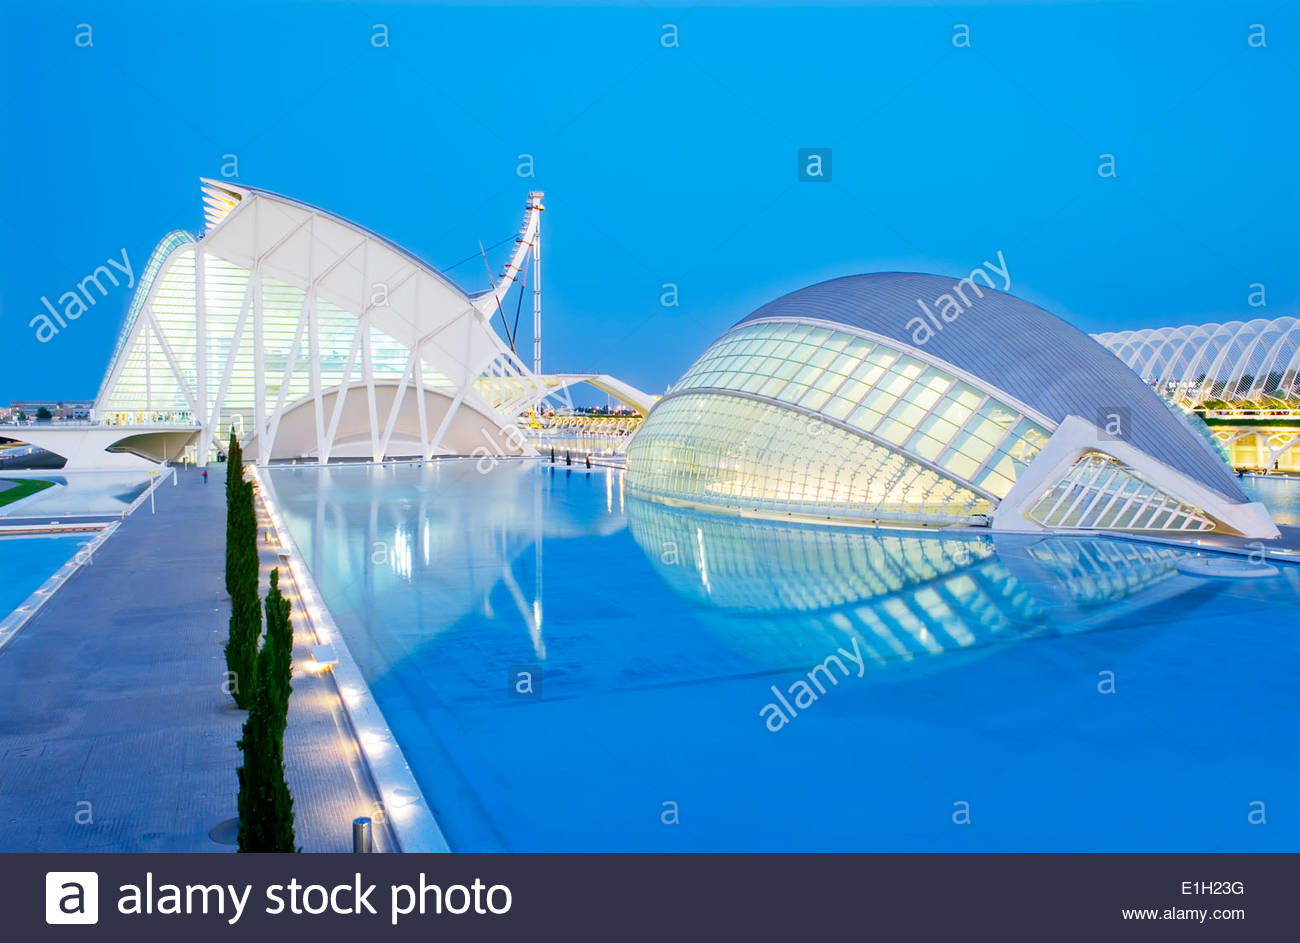 Dusk at City of Arts and Sciences, Valencia, Spain - Stock Image